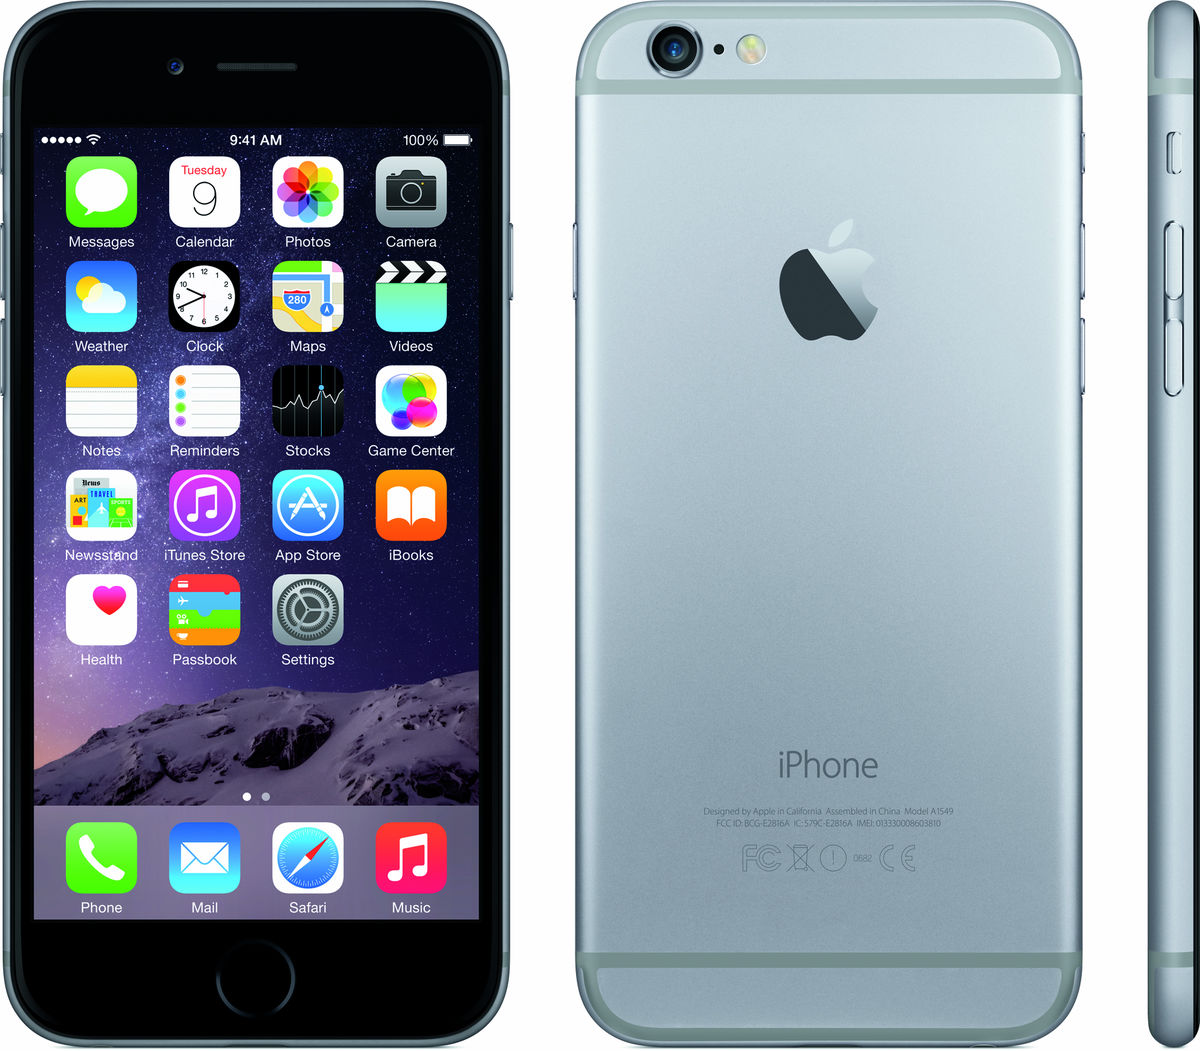 iphone 6 plus apple store iphone 6 iphone 6 plus apple などapple新製品の高解像度画像まとめ 7357